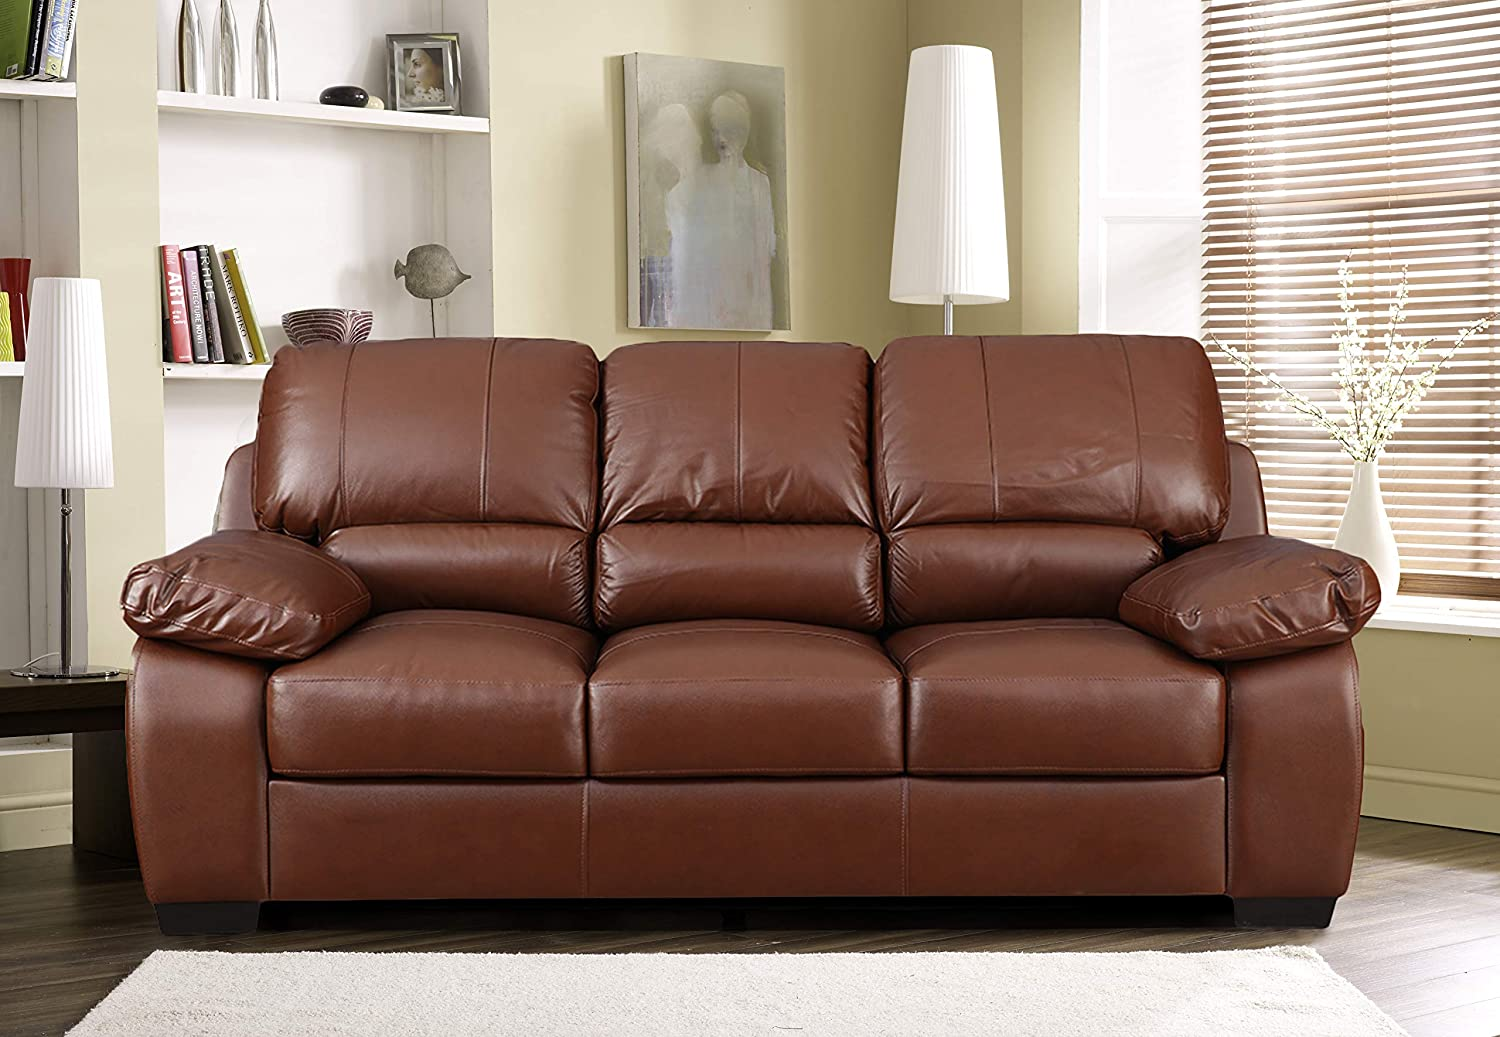 Hometown Barton Half Leather Three Seater Sofa Brown Amazon In